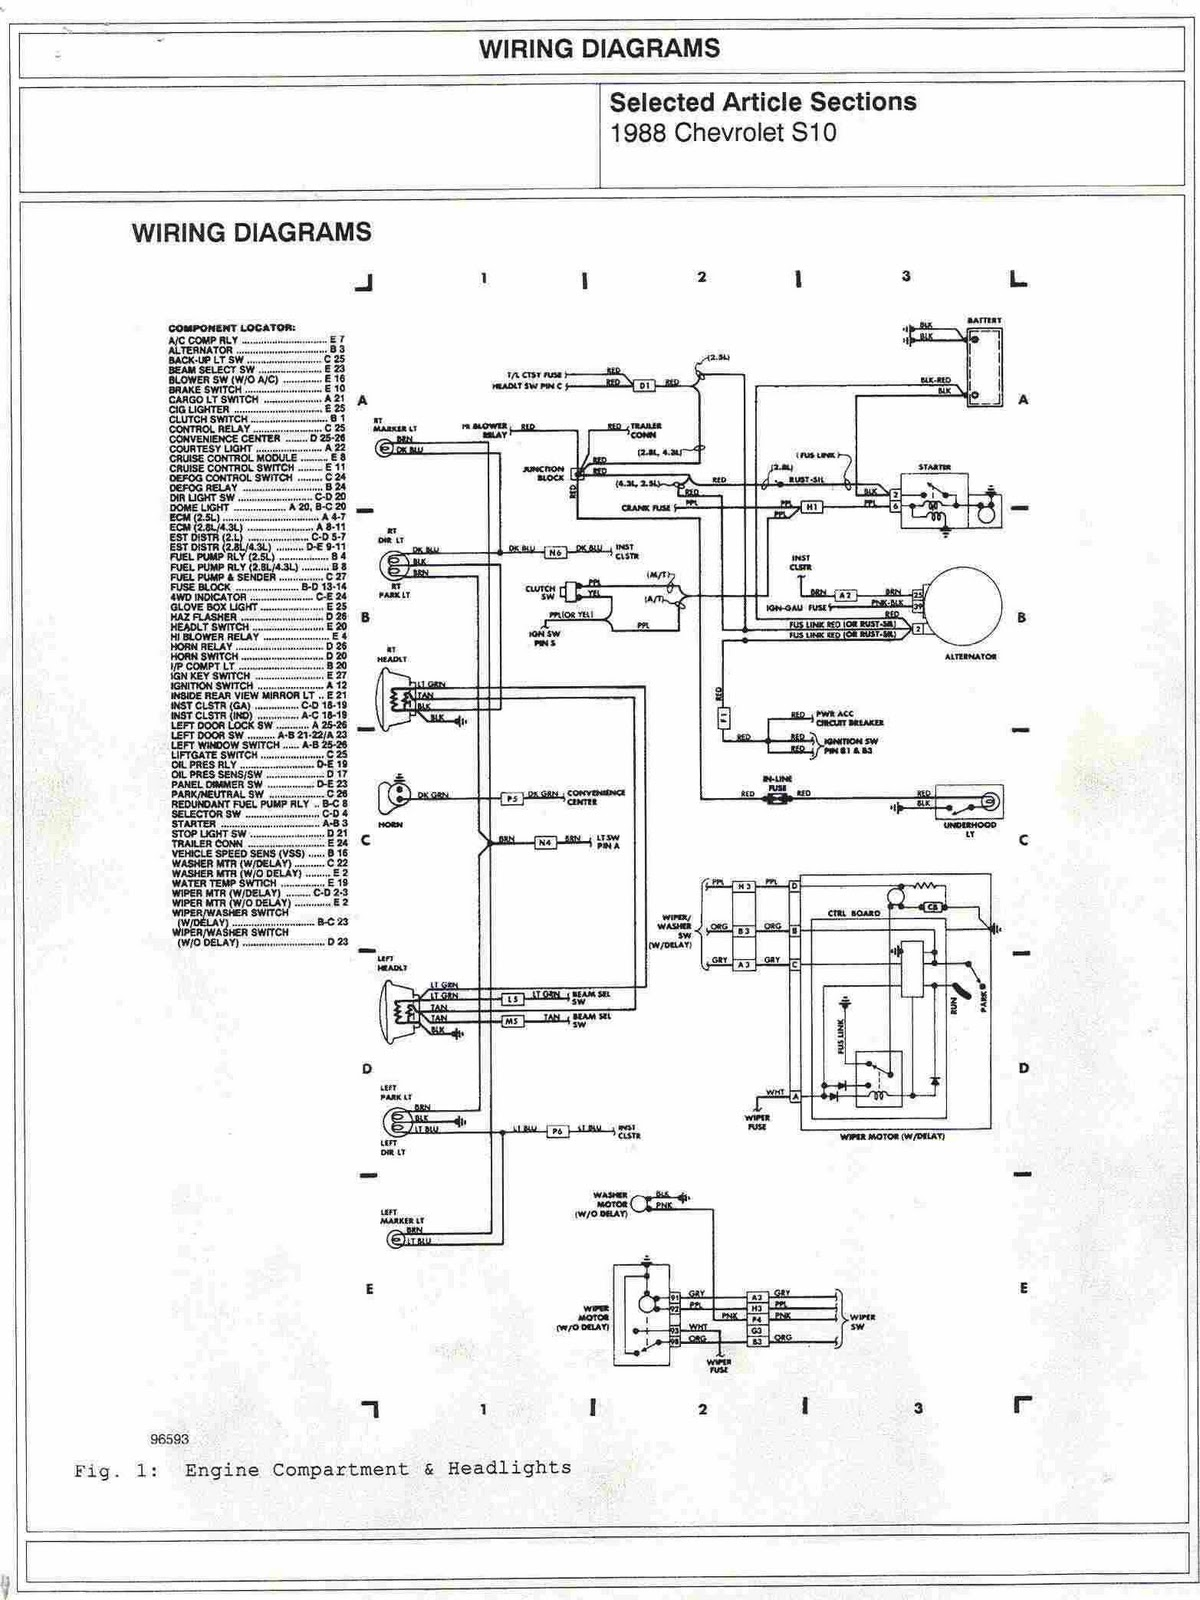 1988+Chevrolet+S10+Engine+Compartment+and+Headlights+Wiring+Diagrams 95 s10 wiring diagram 95 tahoe wiring diagram \u2022 wiring diagrams 2006 Dodge Ram Tail Light Wiring Diagram at fashall.co